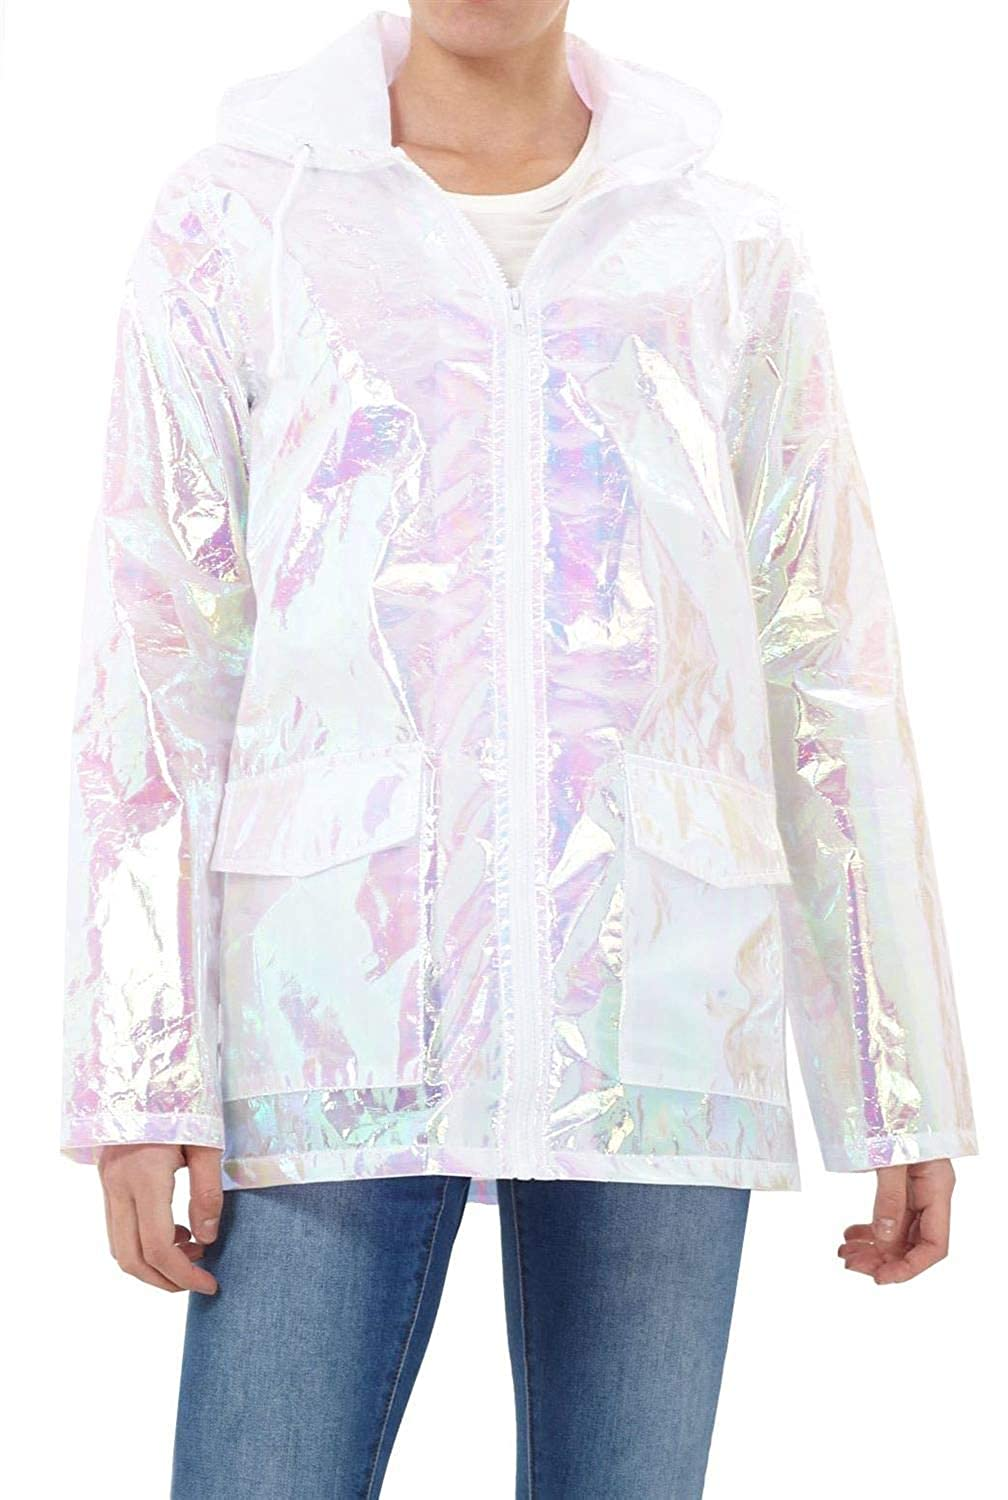 CHOCOLATE PICKLE Women's Holographic Hooded Lightweight Zipped Neon Festival Kagool Mac Raincoat Jacket 8-24